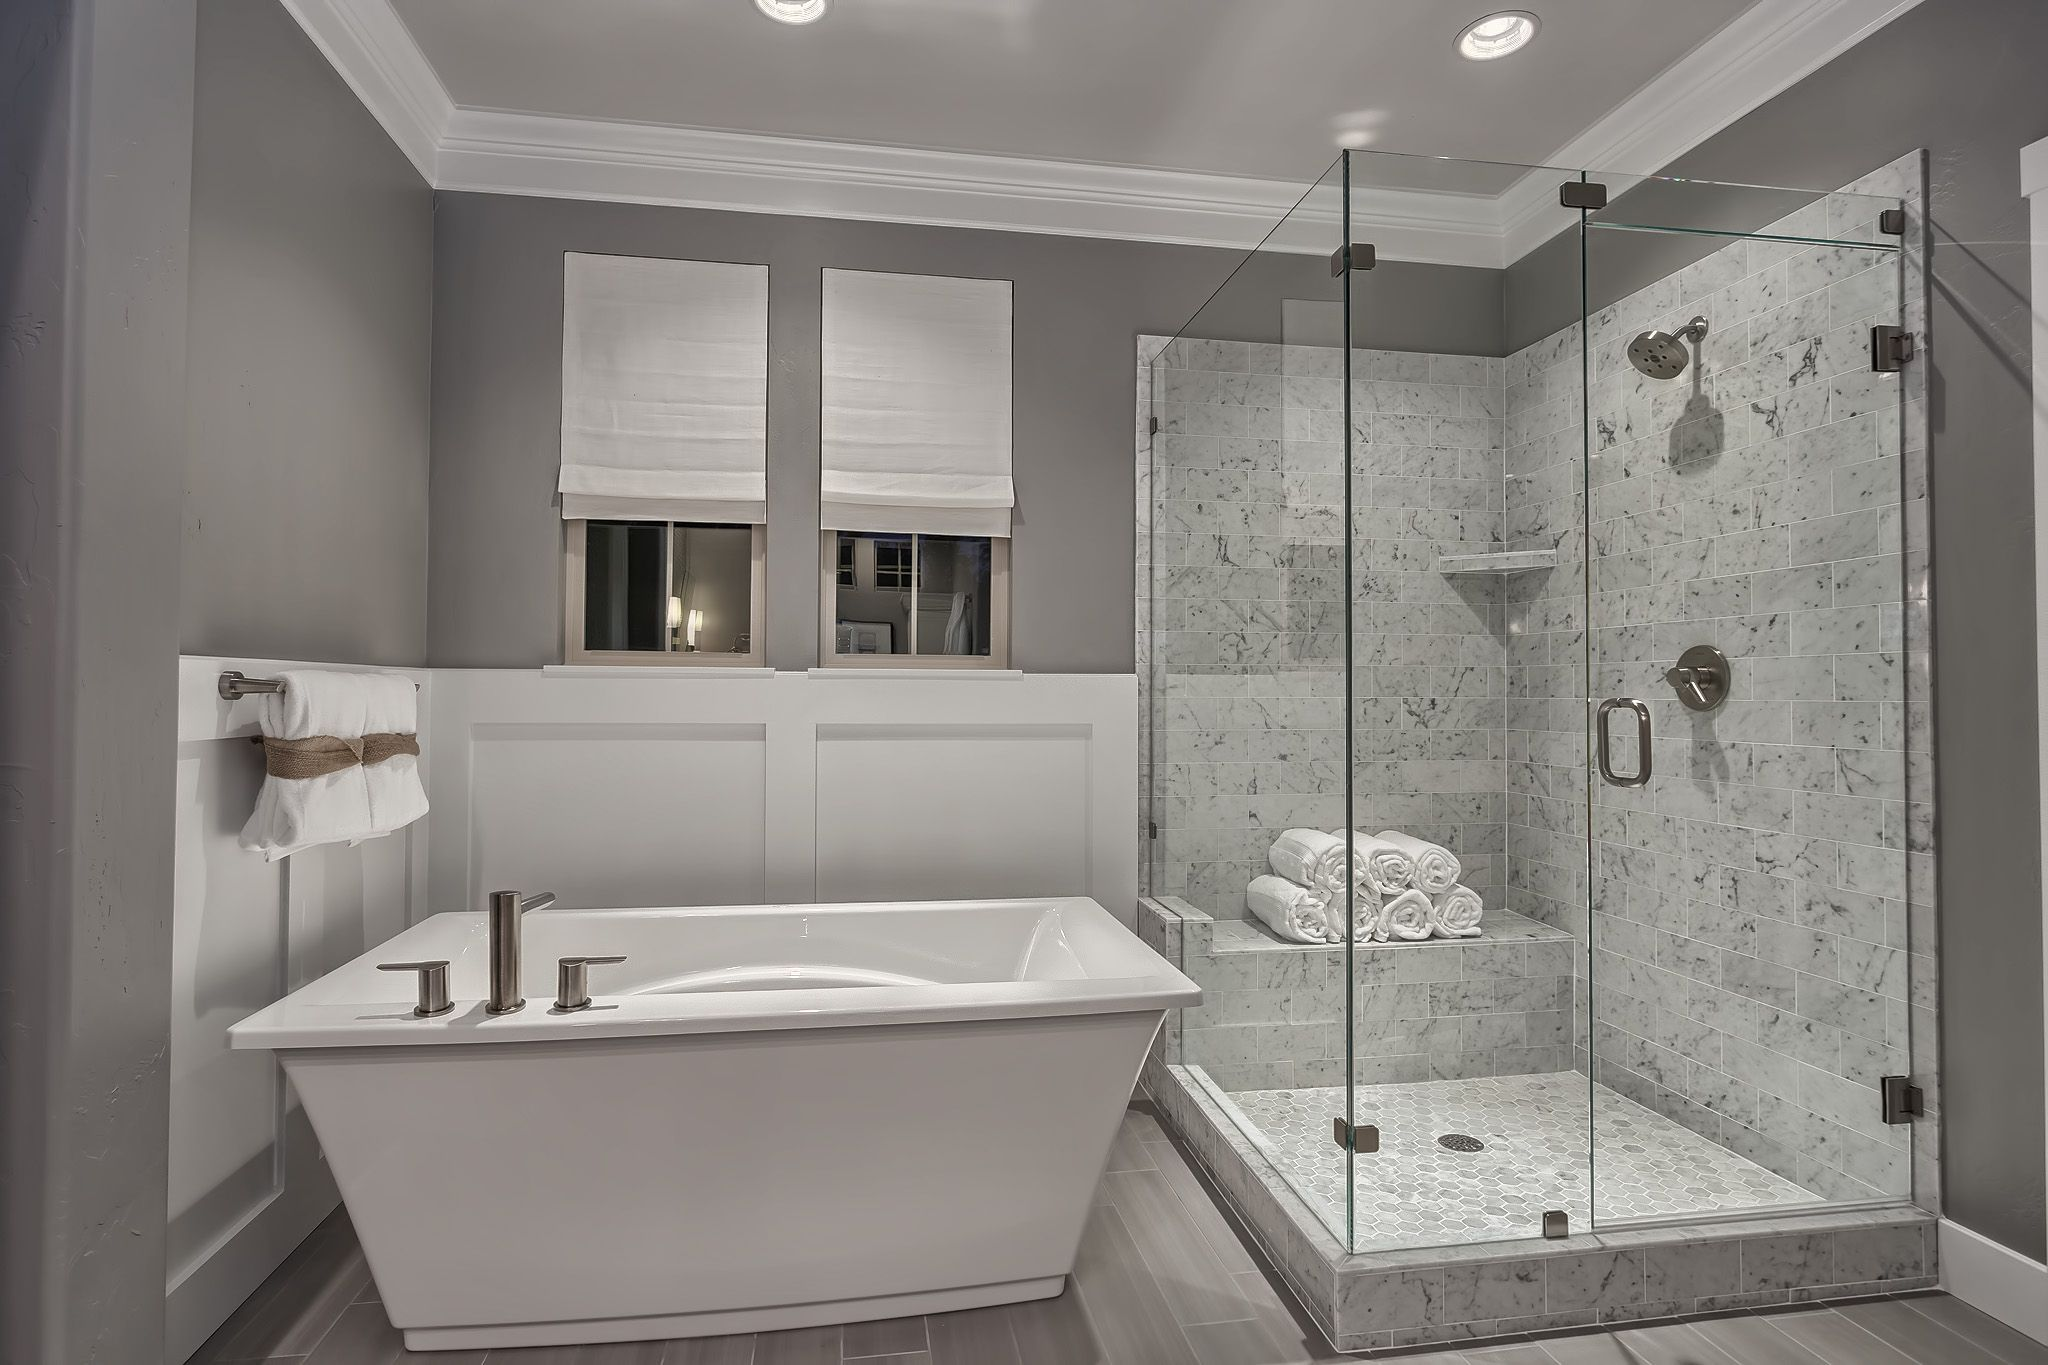 Free Standing Tub With Wainscoting Accentuate The Stone